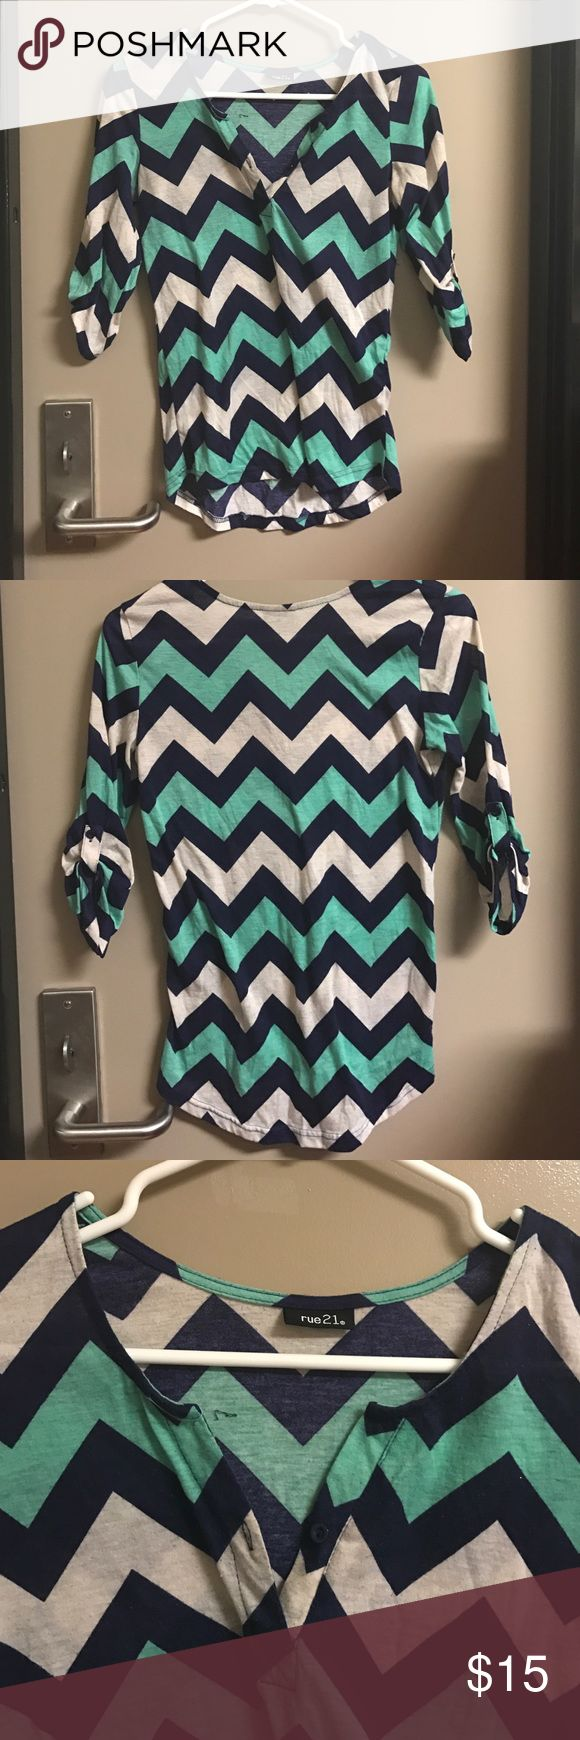 Blue and Cream Chevron Shirt Goes to about the elbow, button on front, no tags but a size medium, no rips/stains Rue21 Tops Blouses